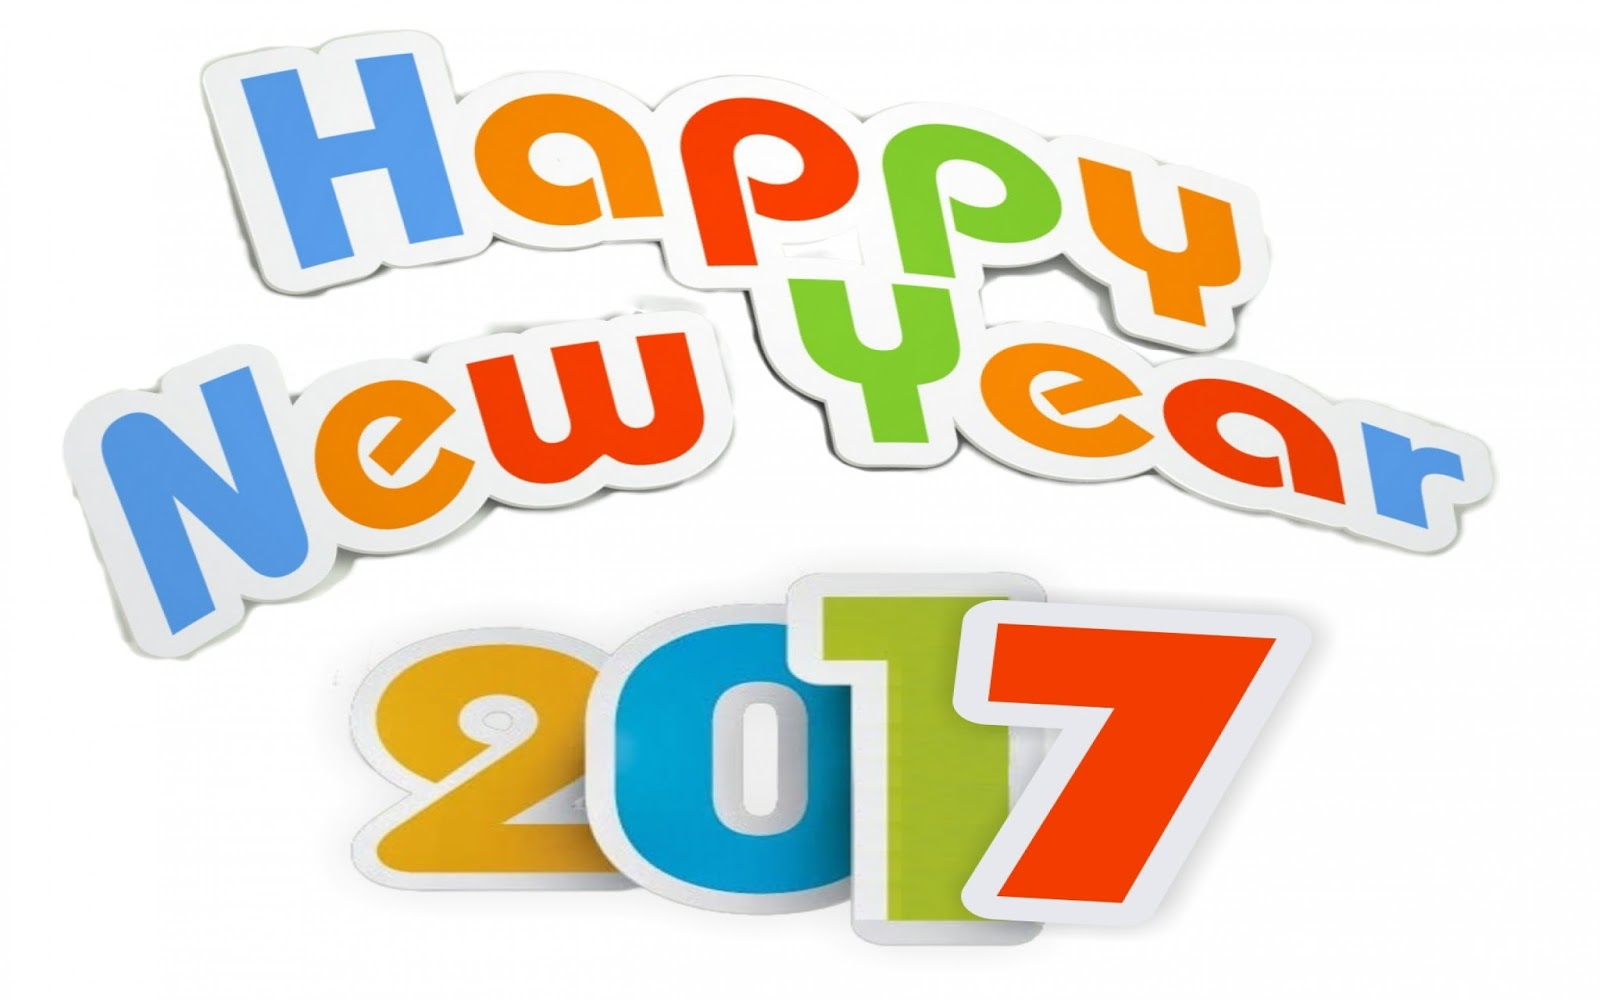 Top 100 most amazing happy new year wishes greetings quotes - Top Happy New Year 2017 Wallpapers